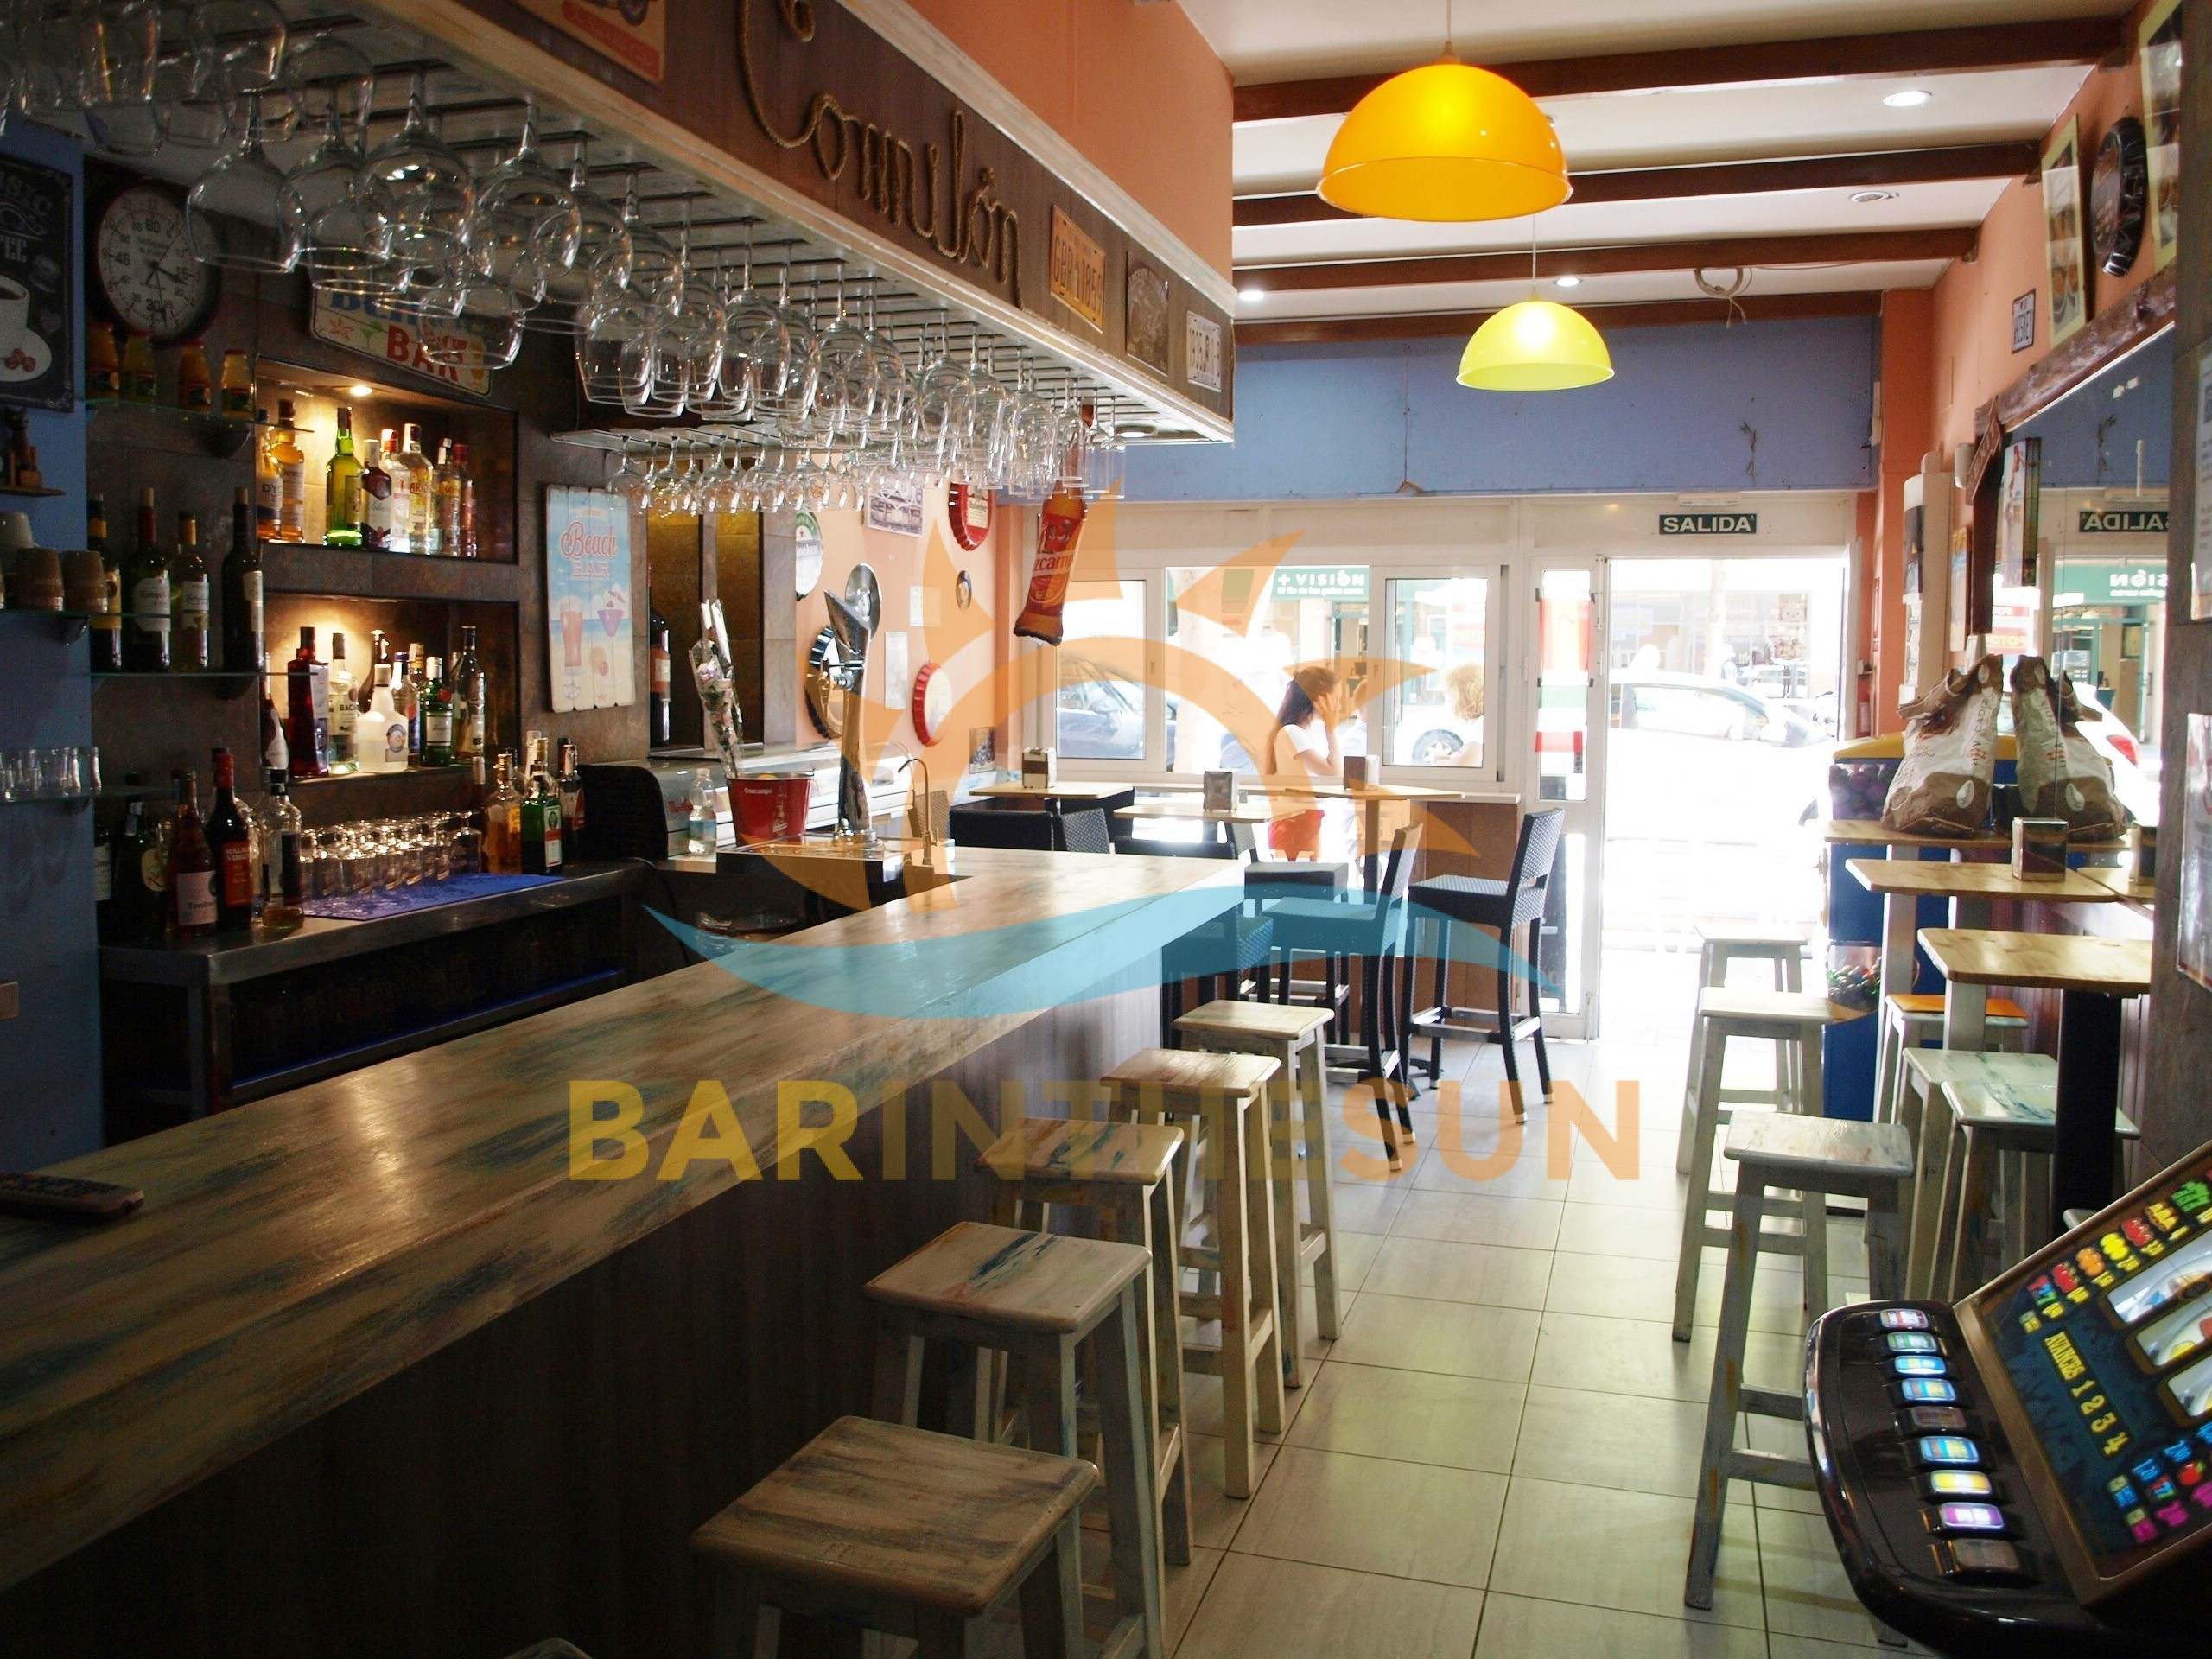 Businesses For Sale in Spain, Bars For Sale in Fuengirola Costa Del Sol